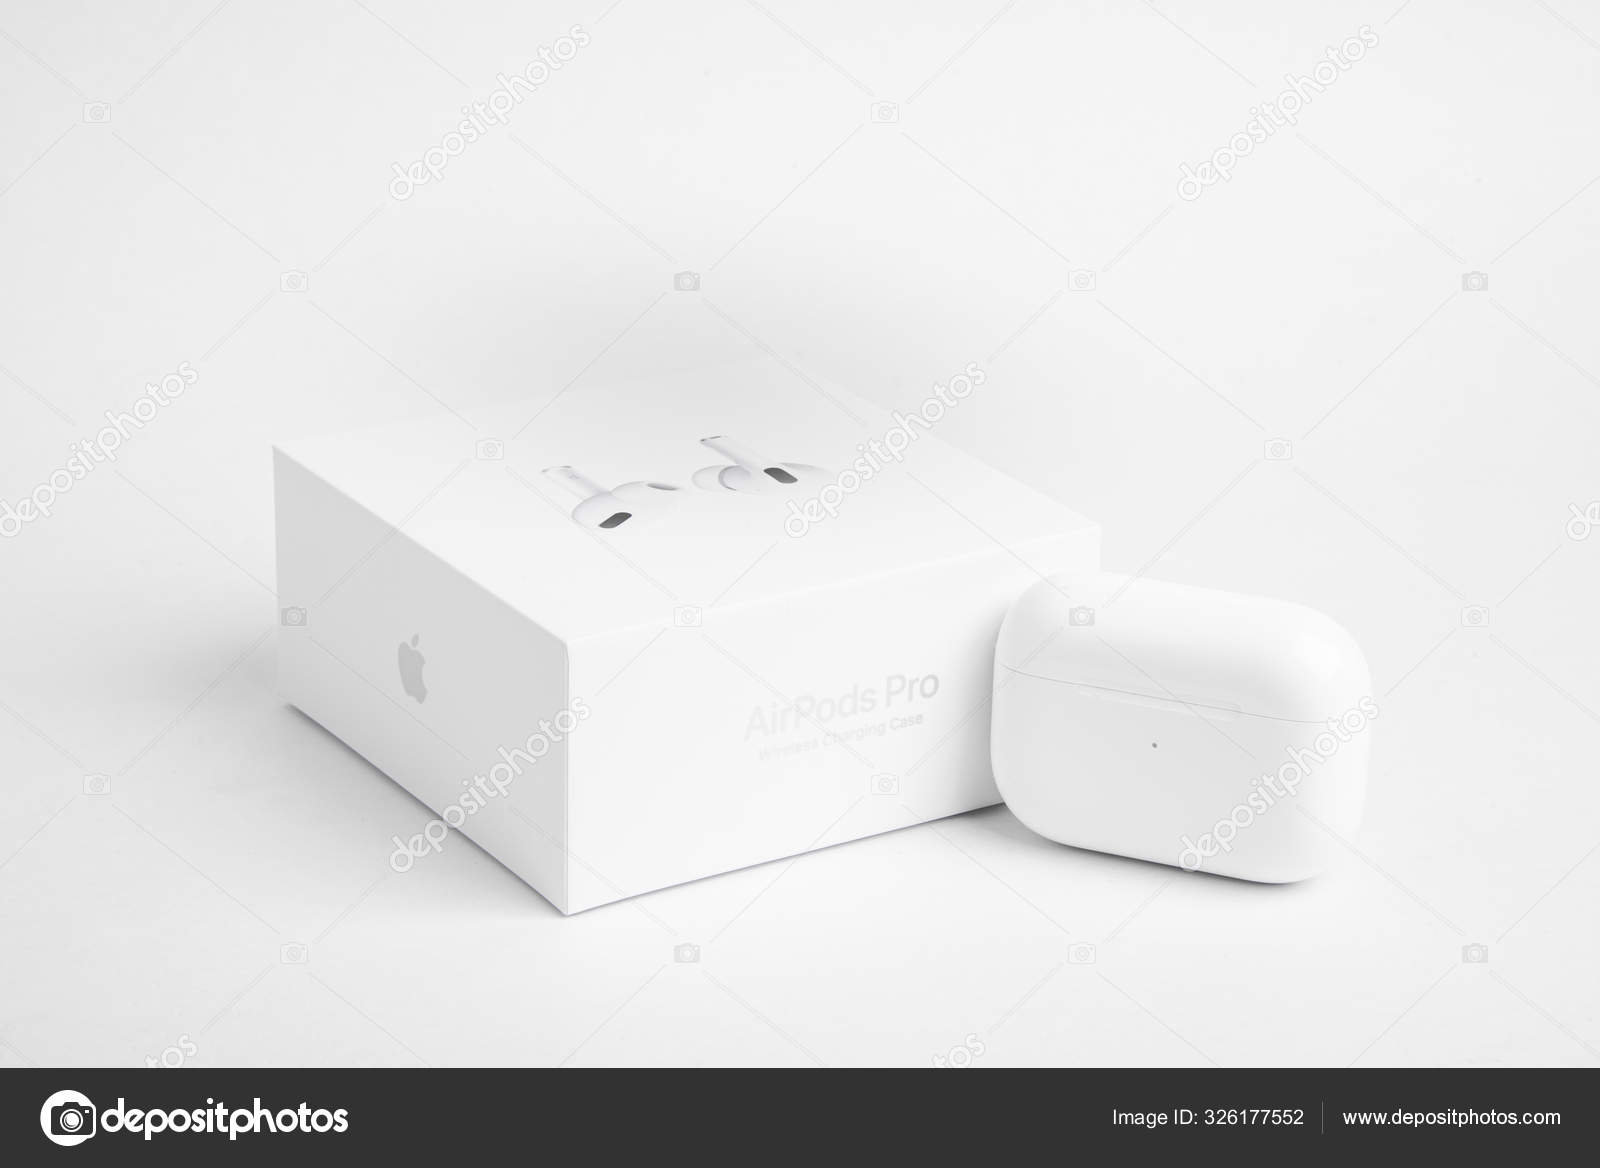 Packaging Box With Charging Case Of Apple Airpods Pro Stock Editorial Photo C Dominiquejames 326177552